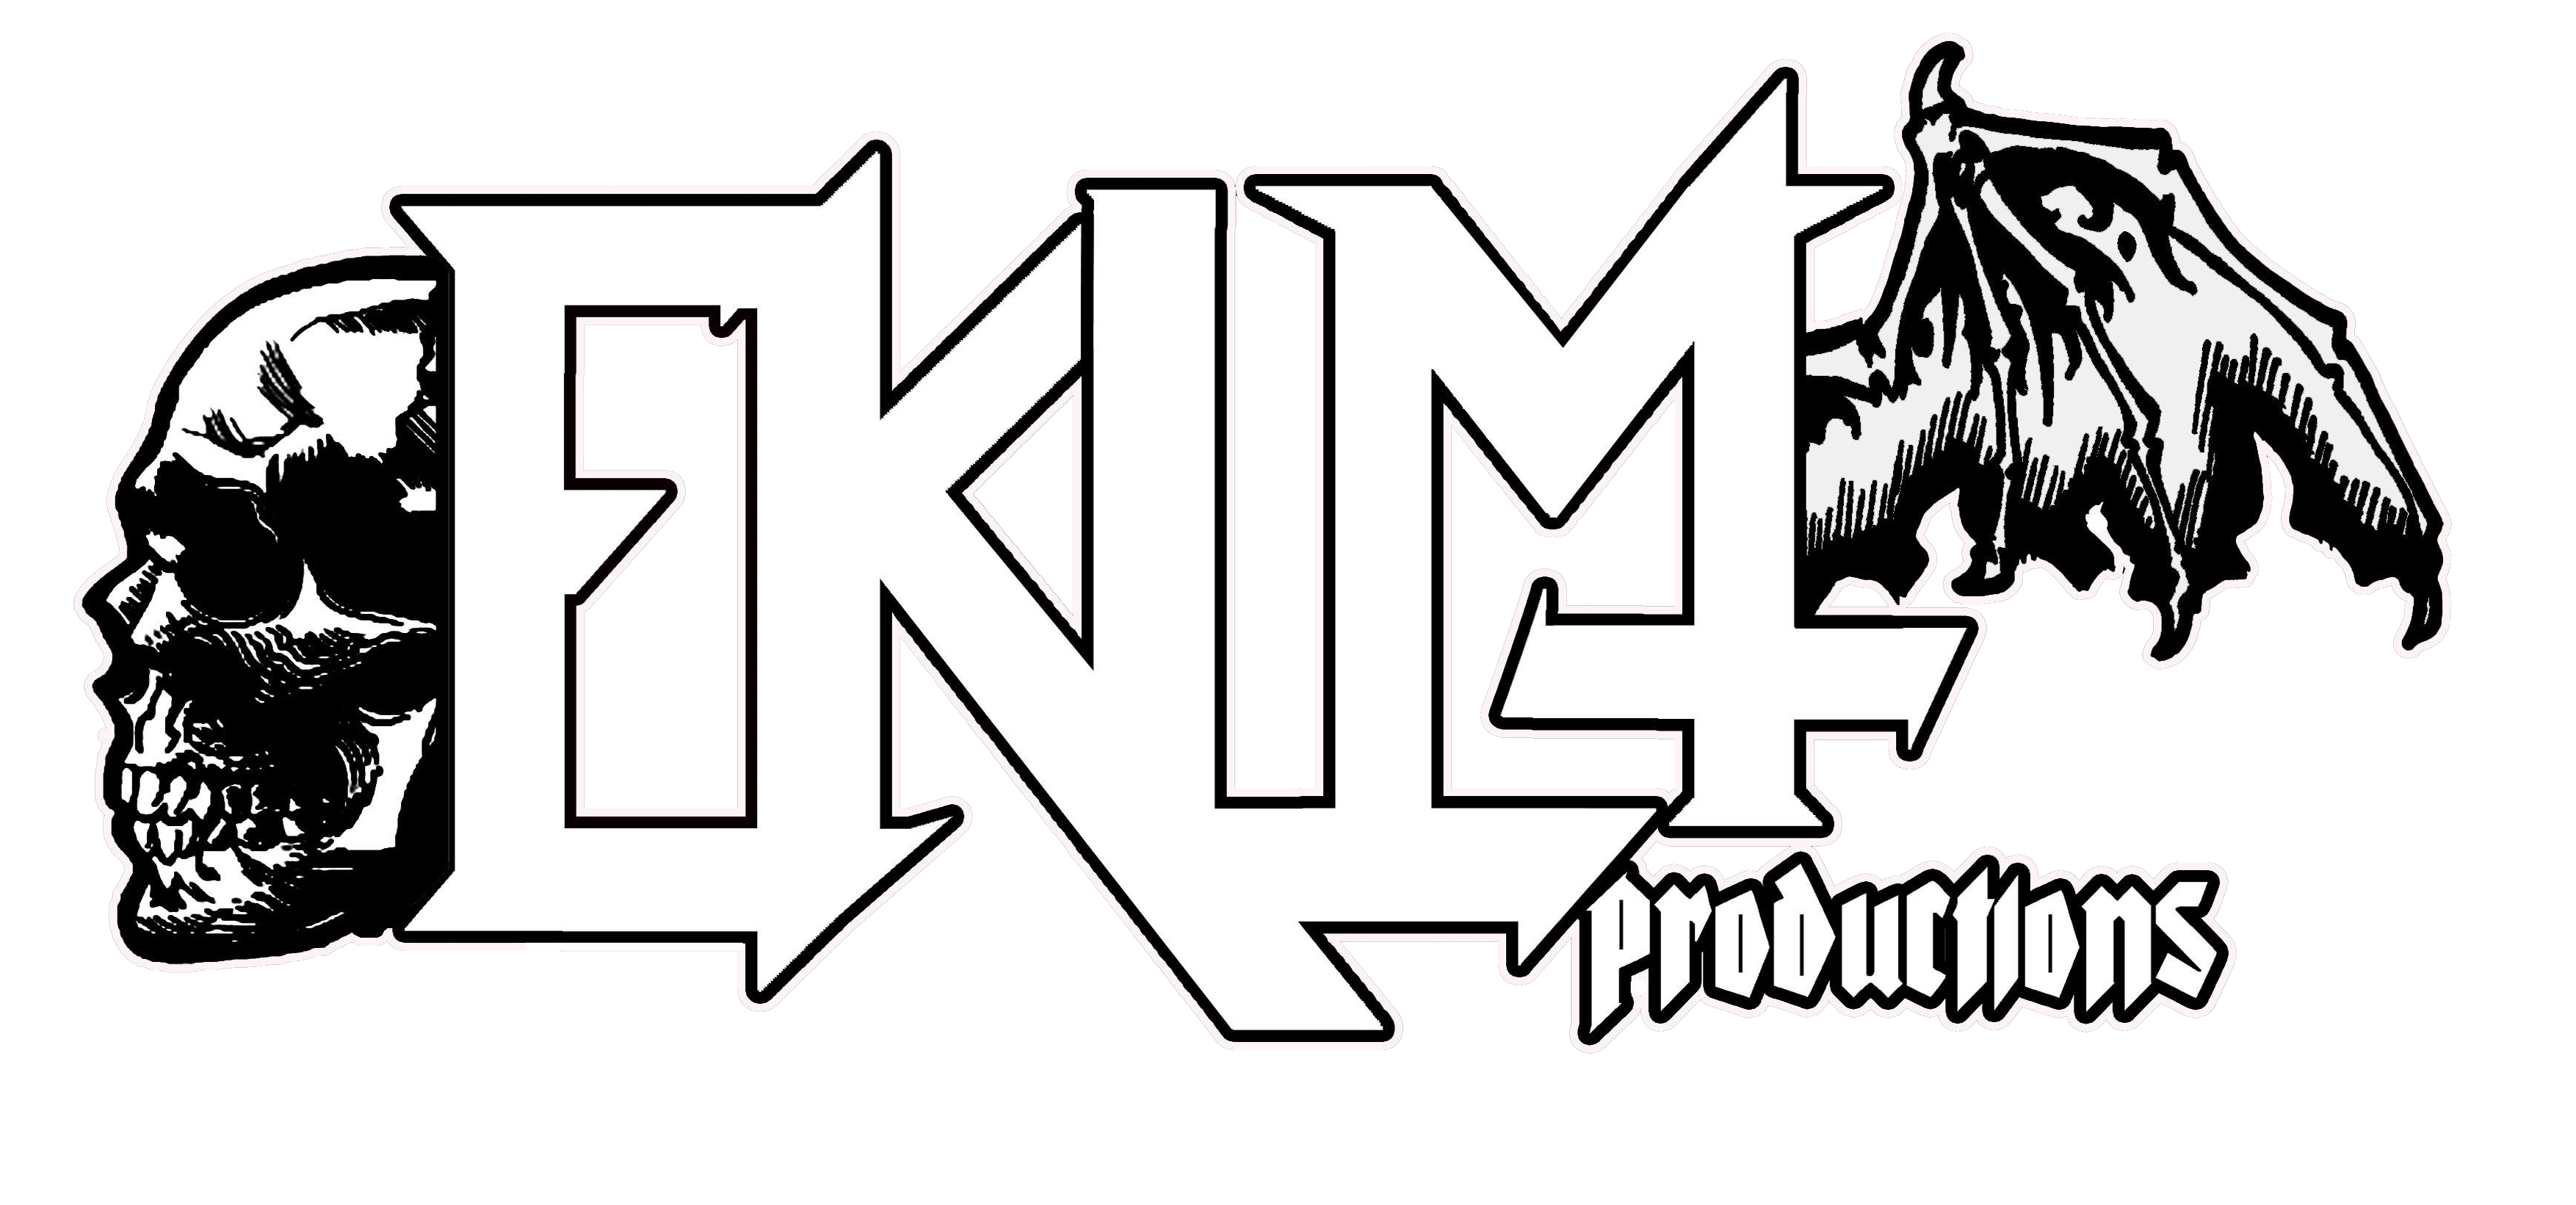 Association - EKLM Productions